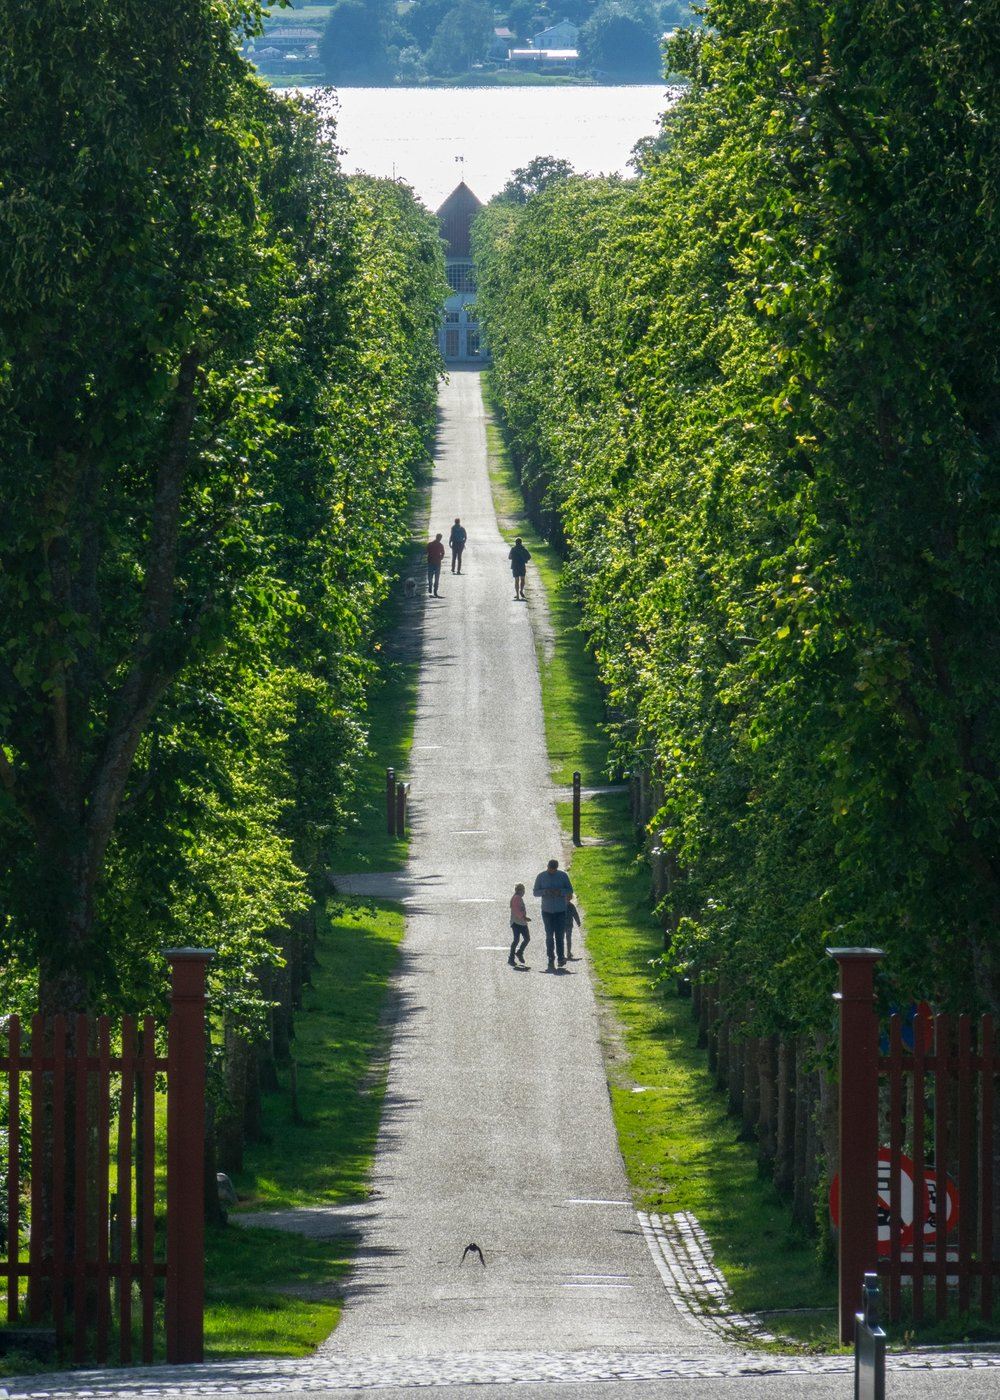 A long path up from the lake, out front of the palace.